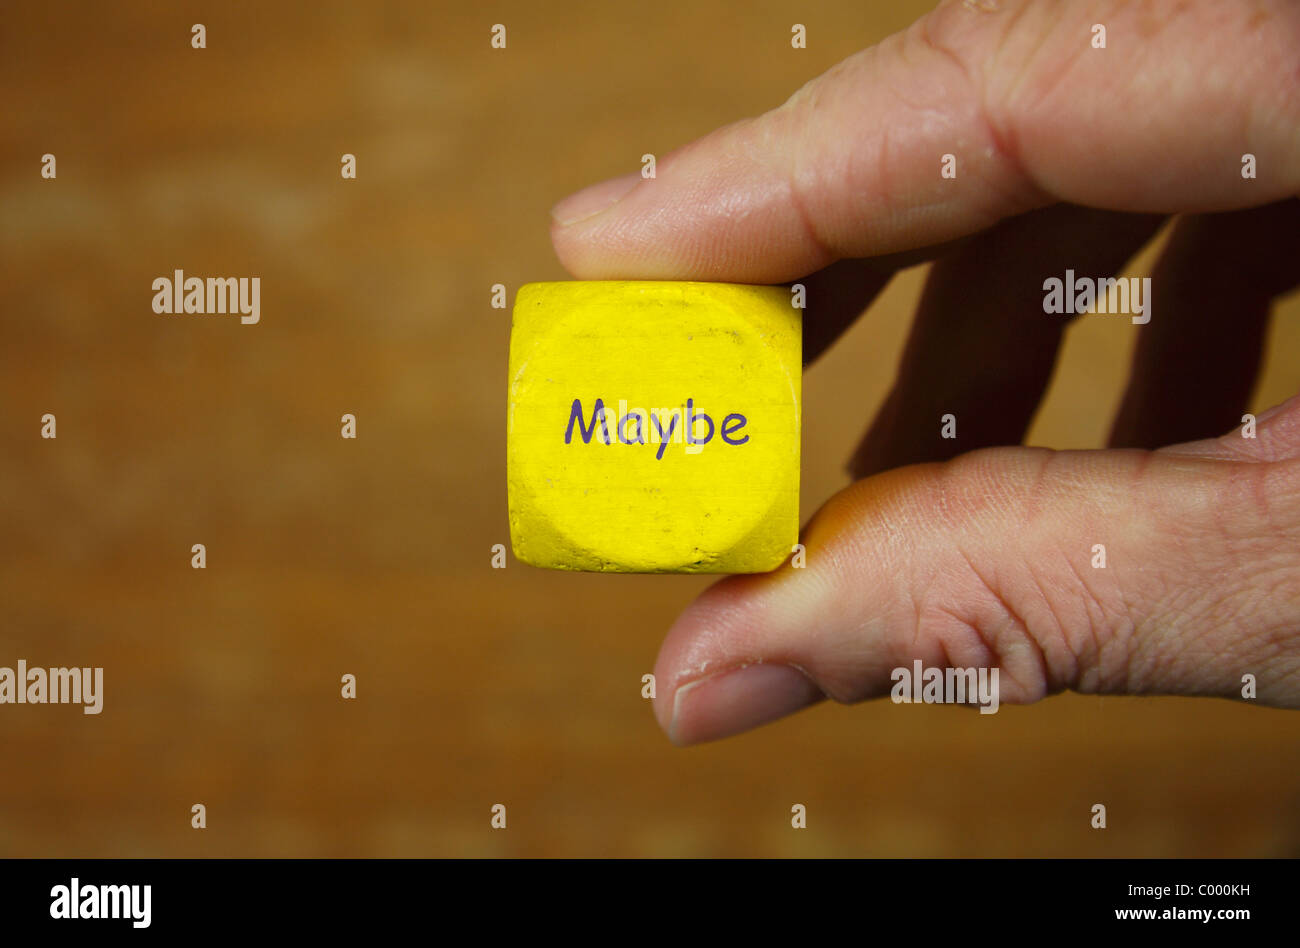 A man holding a yellow dice with the word 'MAYBE' inscribed upon it. - Stock Image